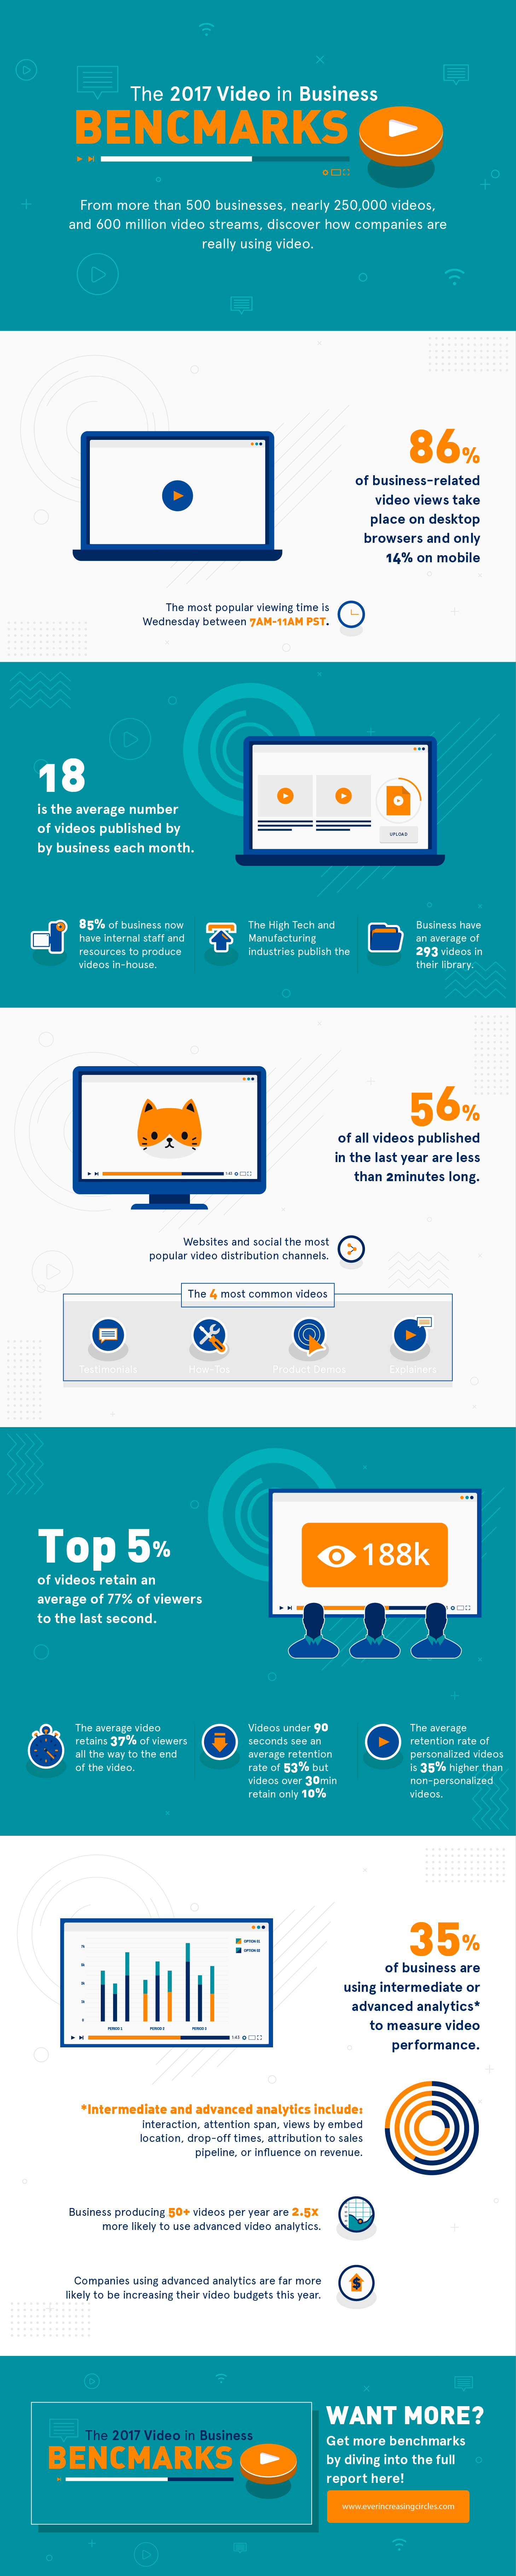 2017 video in business benchmarks infographic